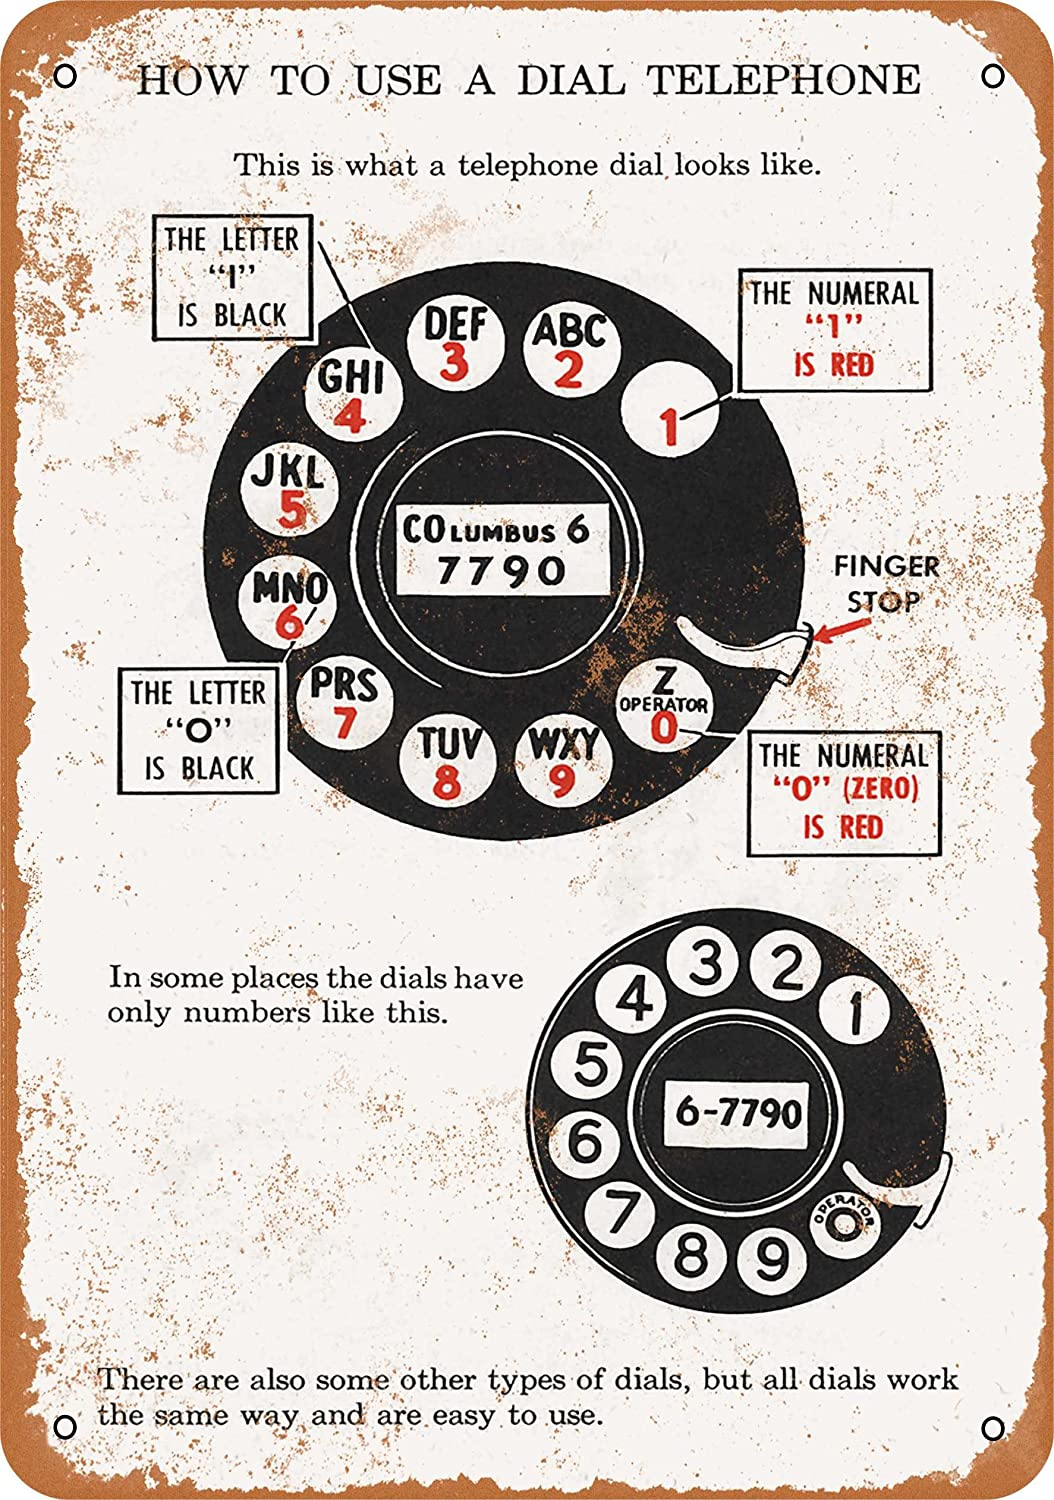 Wall-Color 7 x 10 Metal Sign - 1927 Here's How to Use a Dial Telephone - Vintage Look